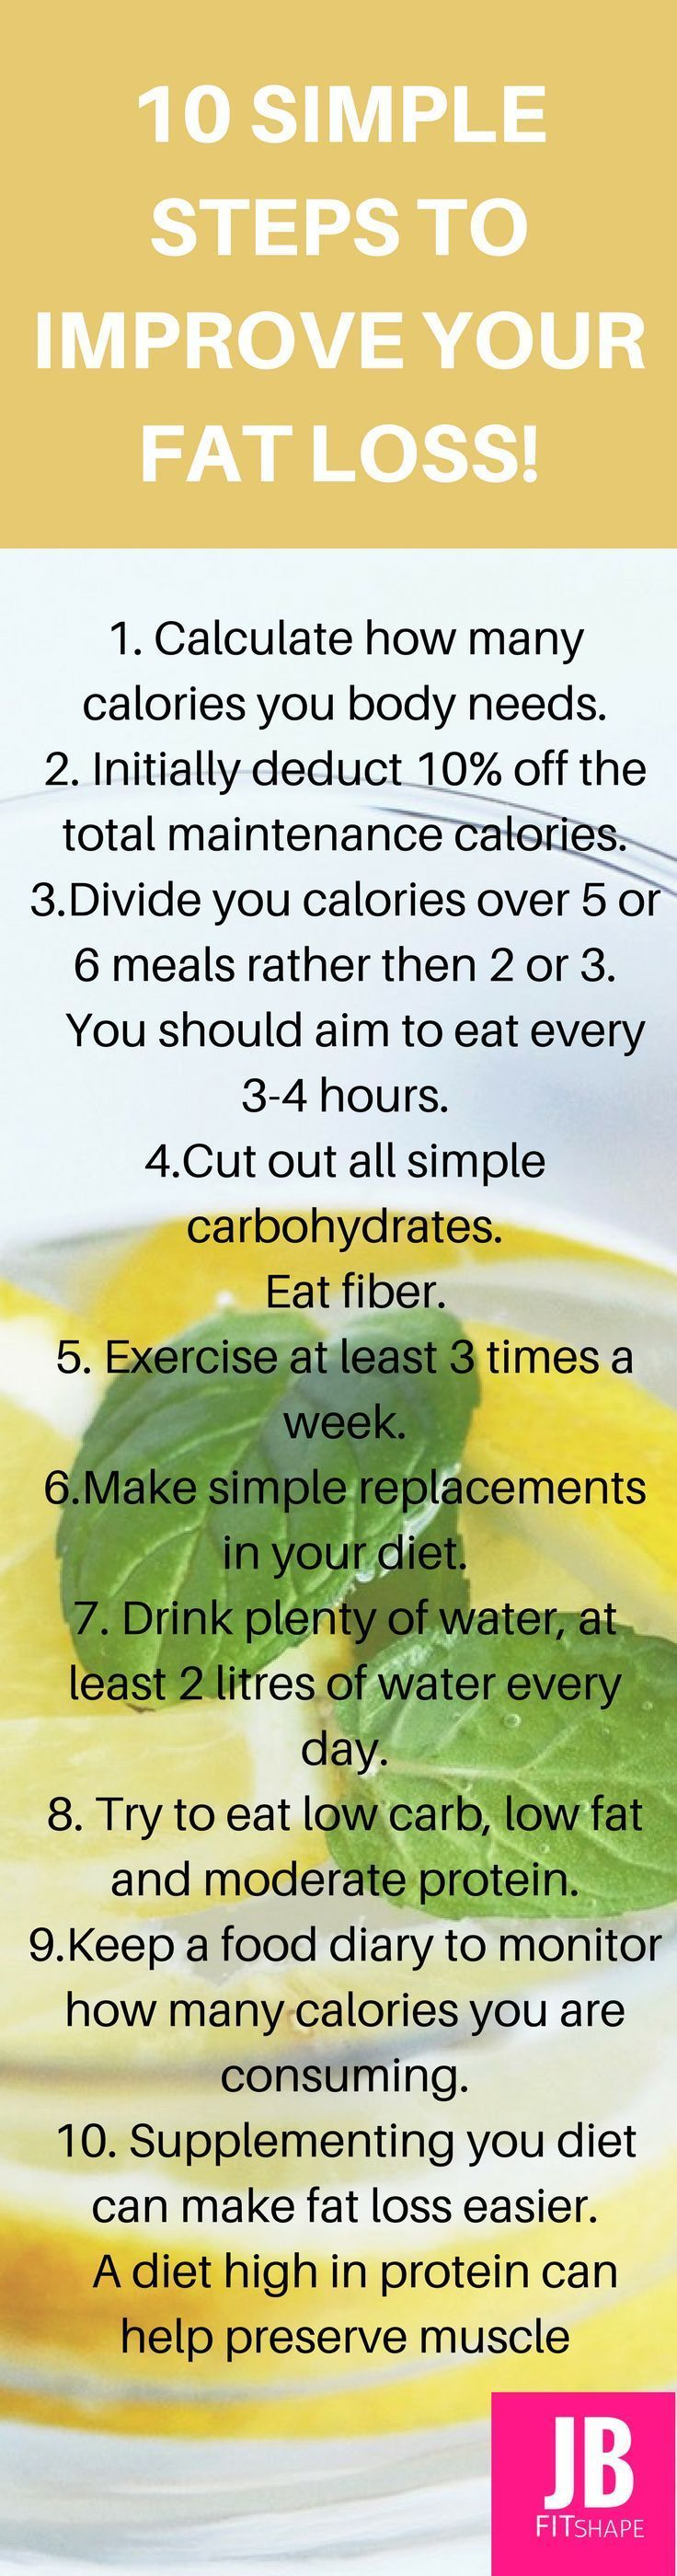 Easy ways to lose weight and get fit